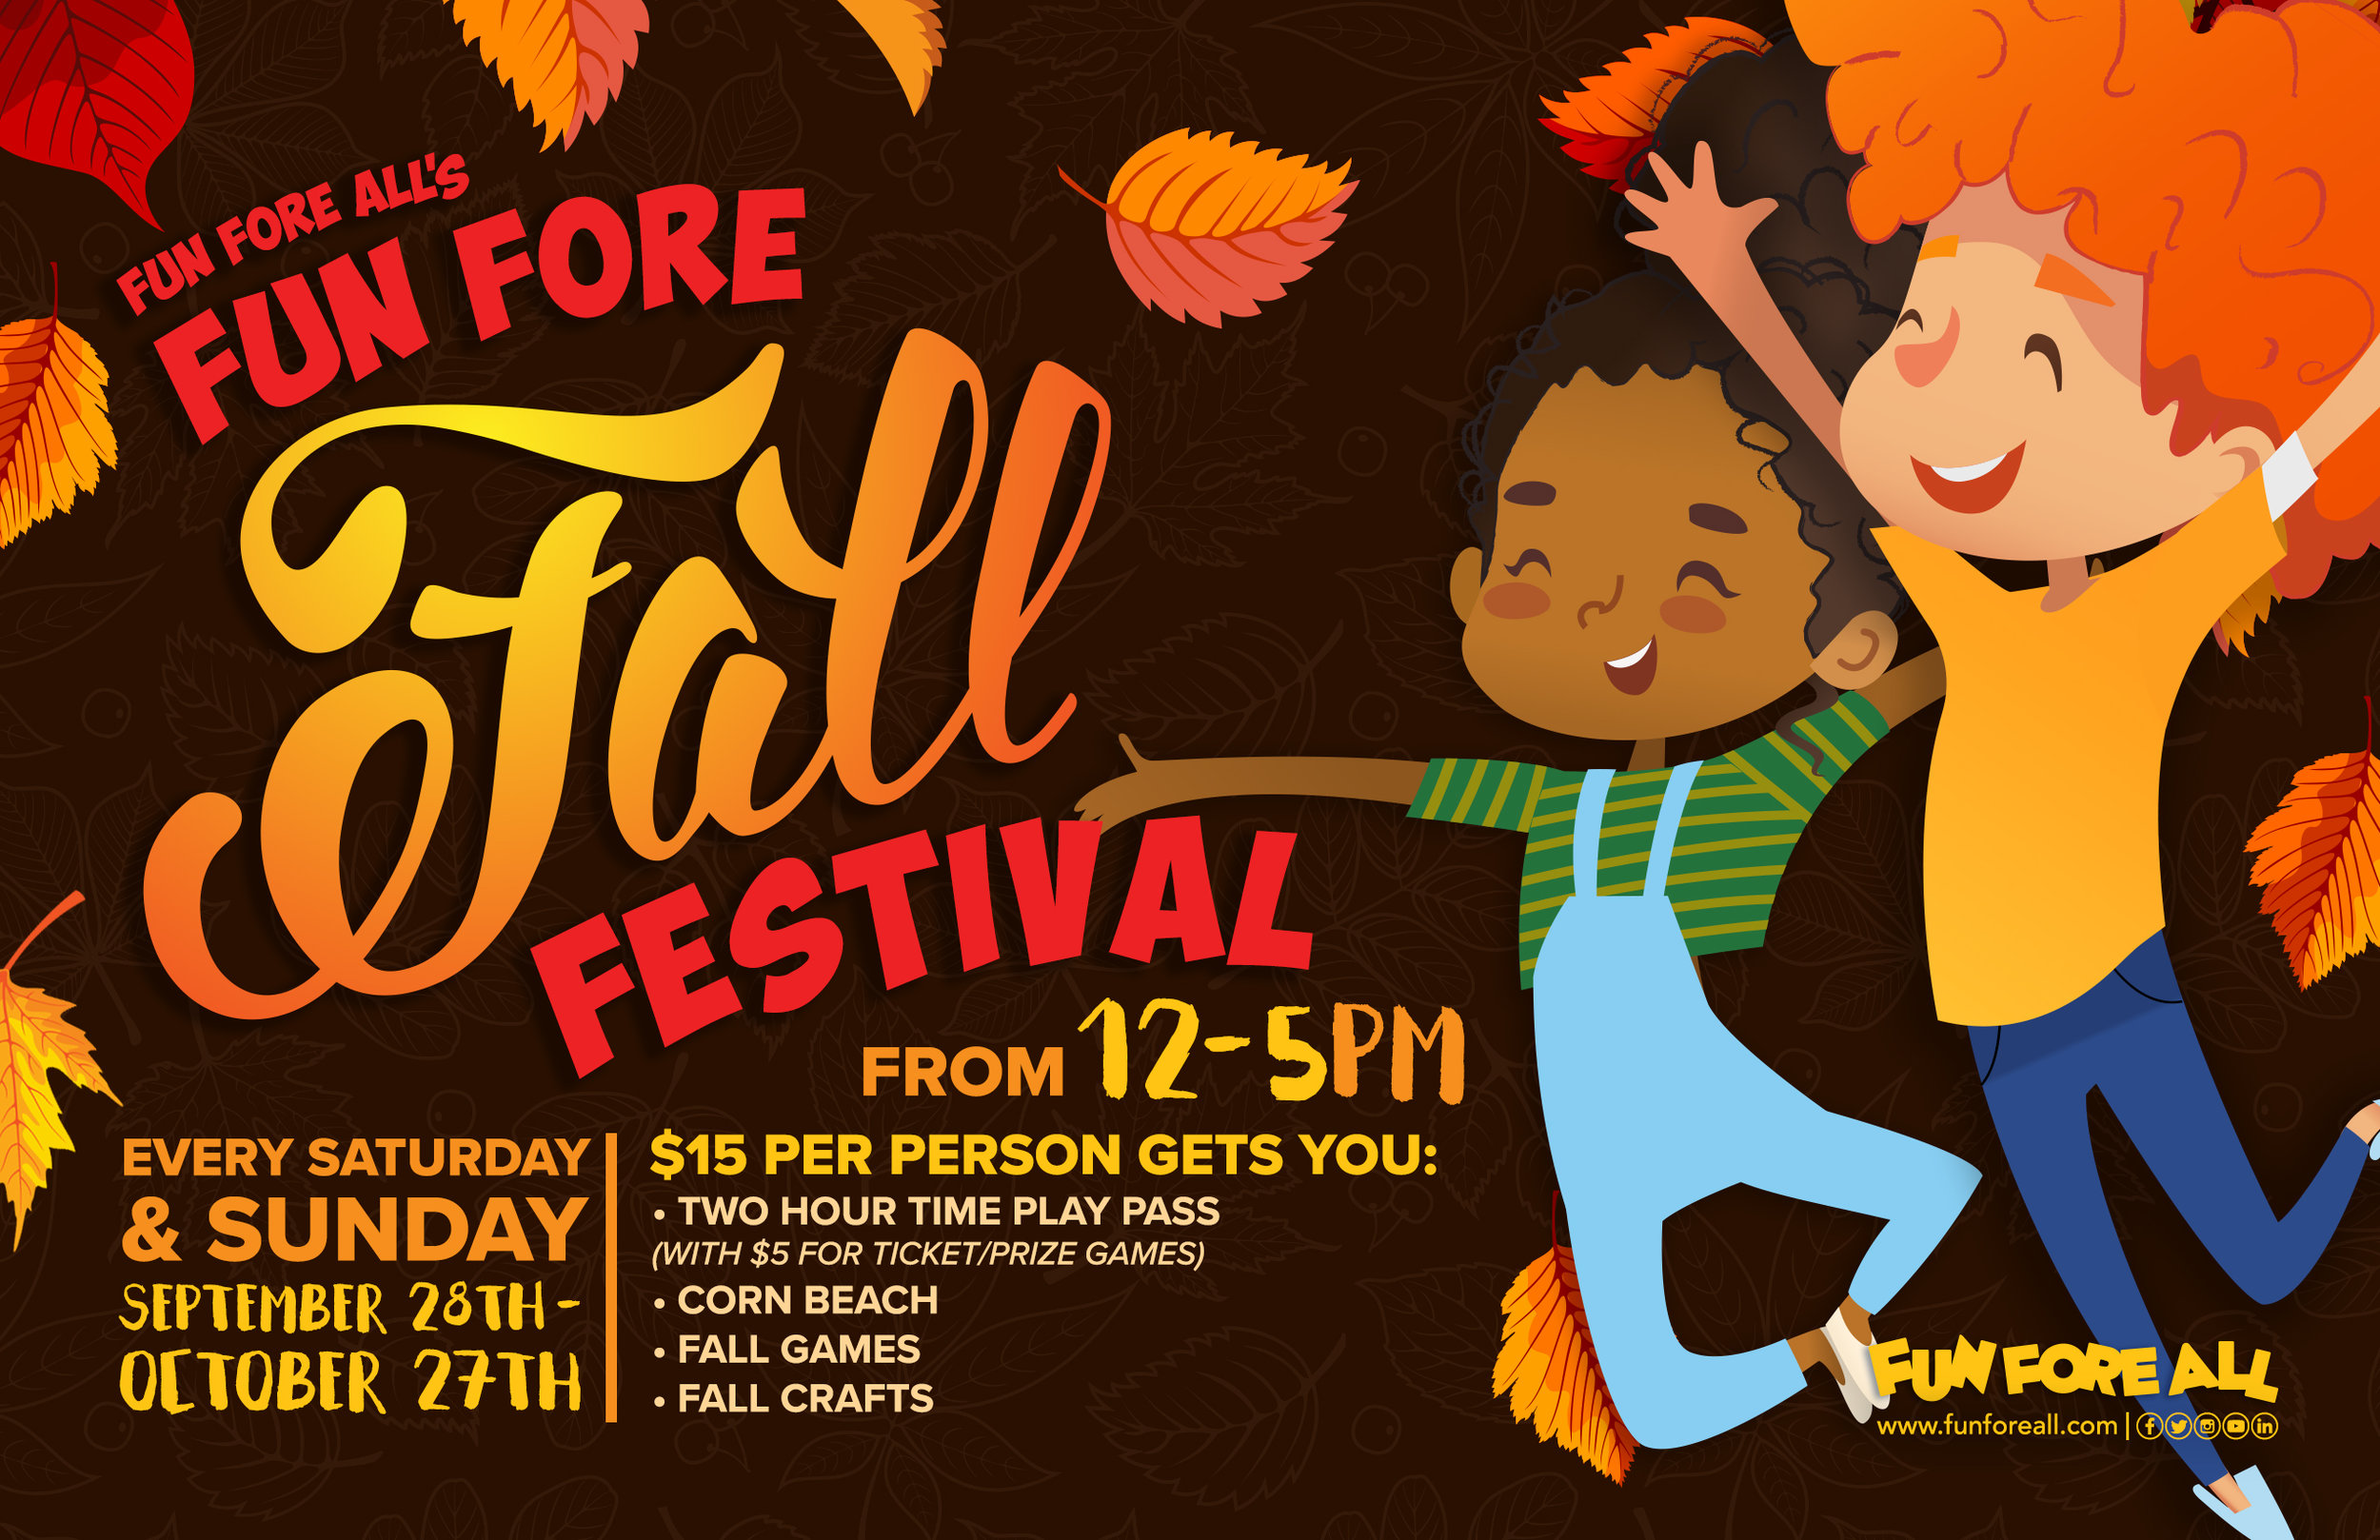 Fun Fore Fall Flyer 2019 Print.jpg